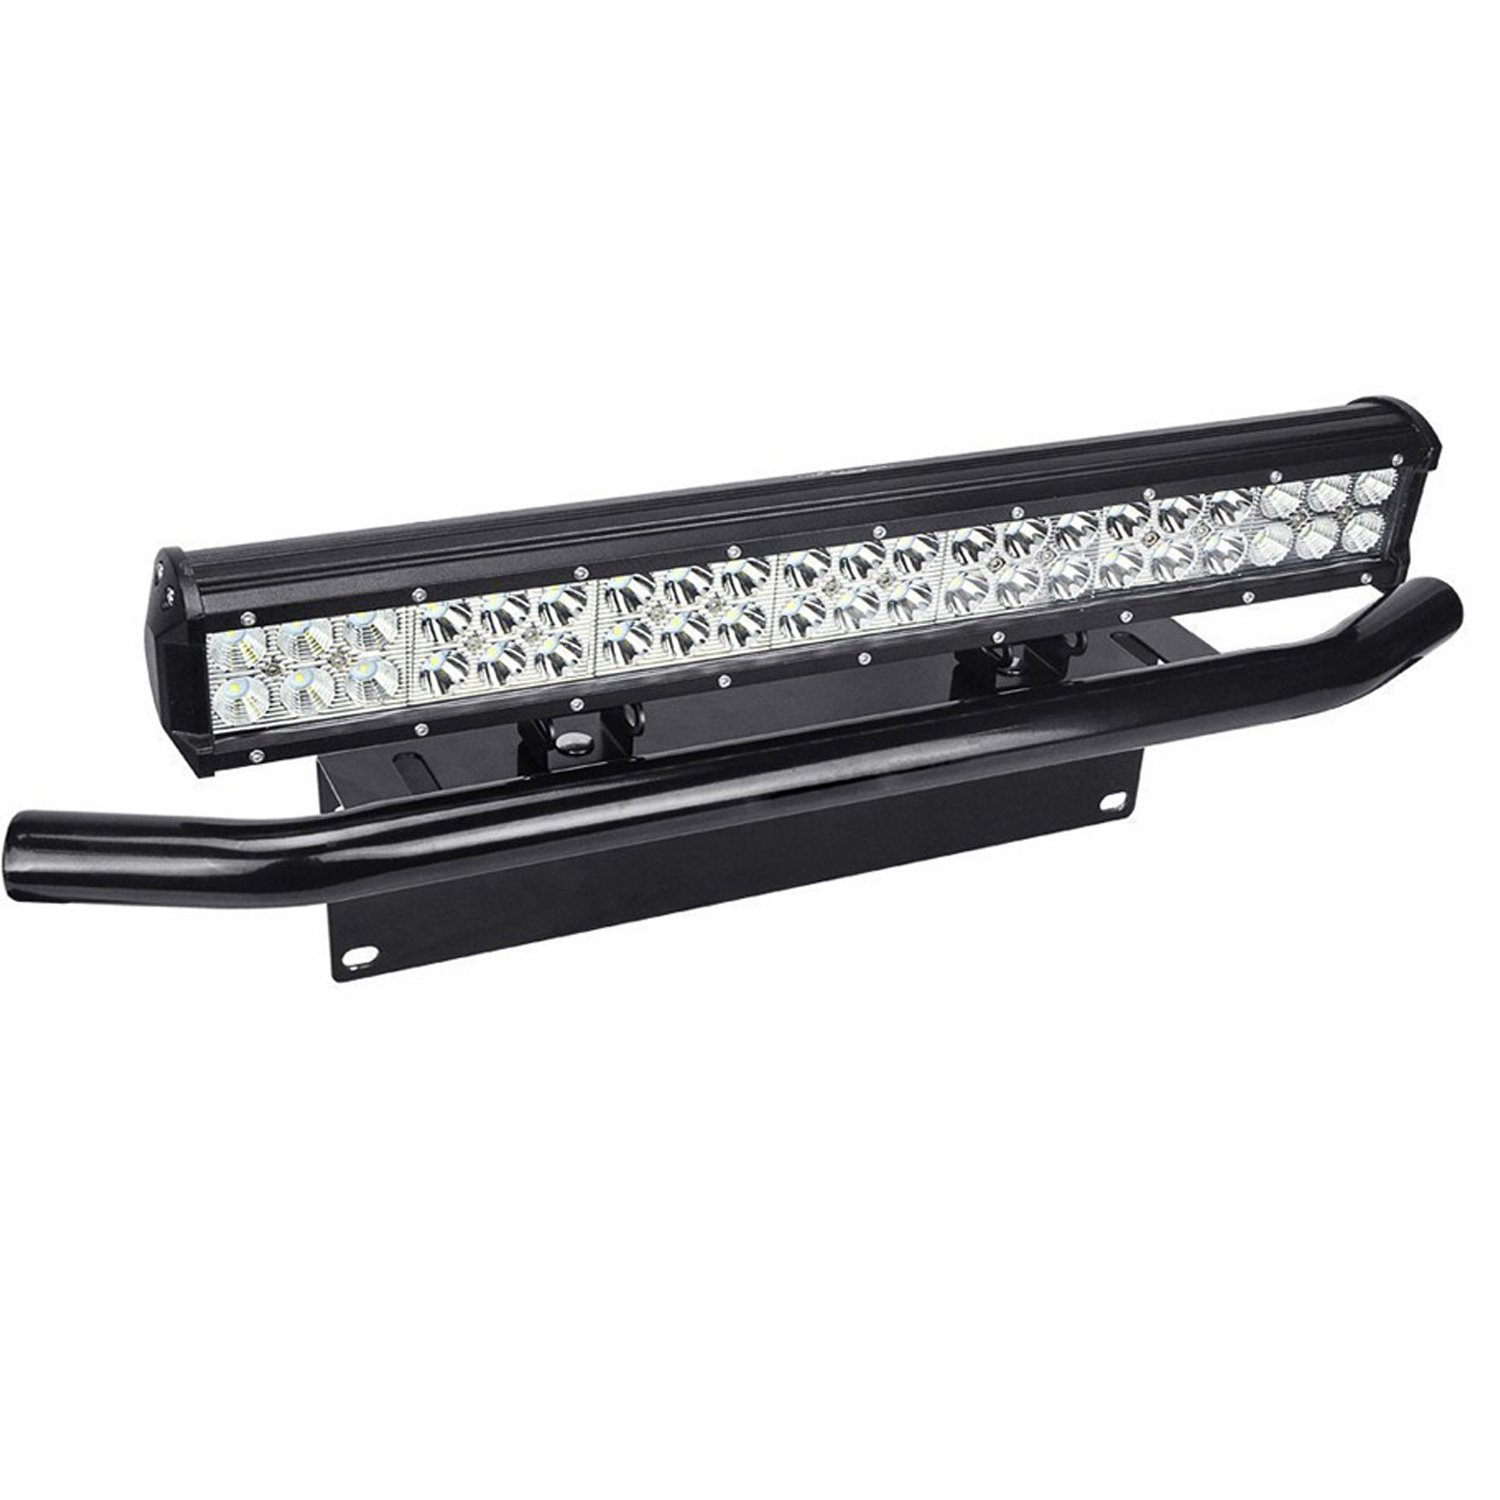 Willpower 20 inch 126W Spot Flood LED Work Light Bar with License Plate Bracket Off road Trucks SUV 4WD Driving Fog Lights (20 inch + BK011)